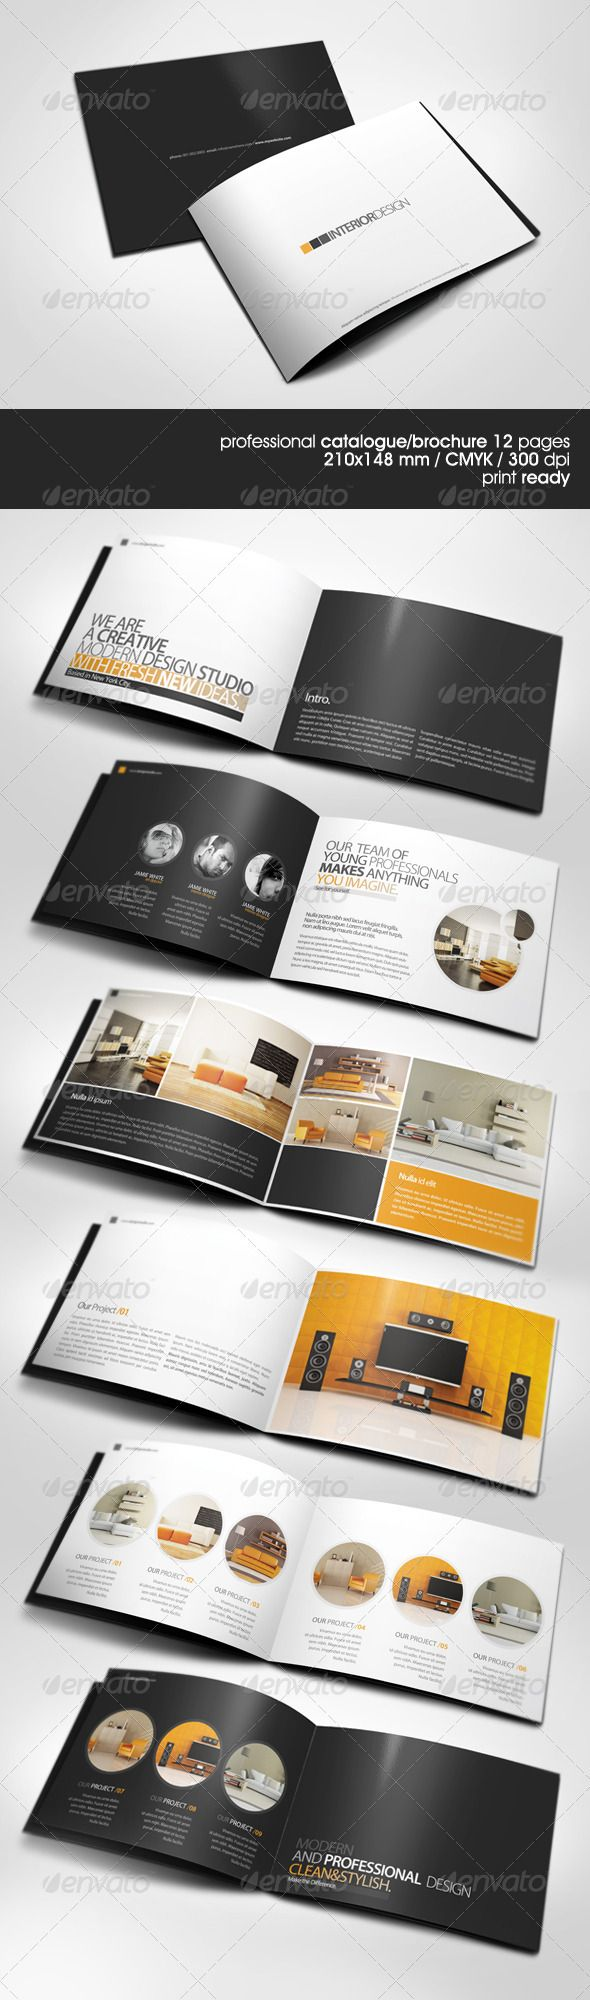 Home \ Files \ Print Templates \ Brochures \ Catalogs\ Modern A5 Catalogue Item DetailsComments